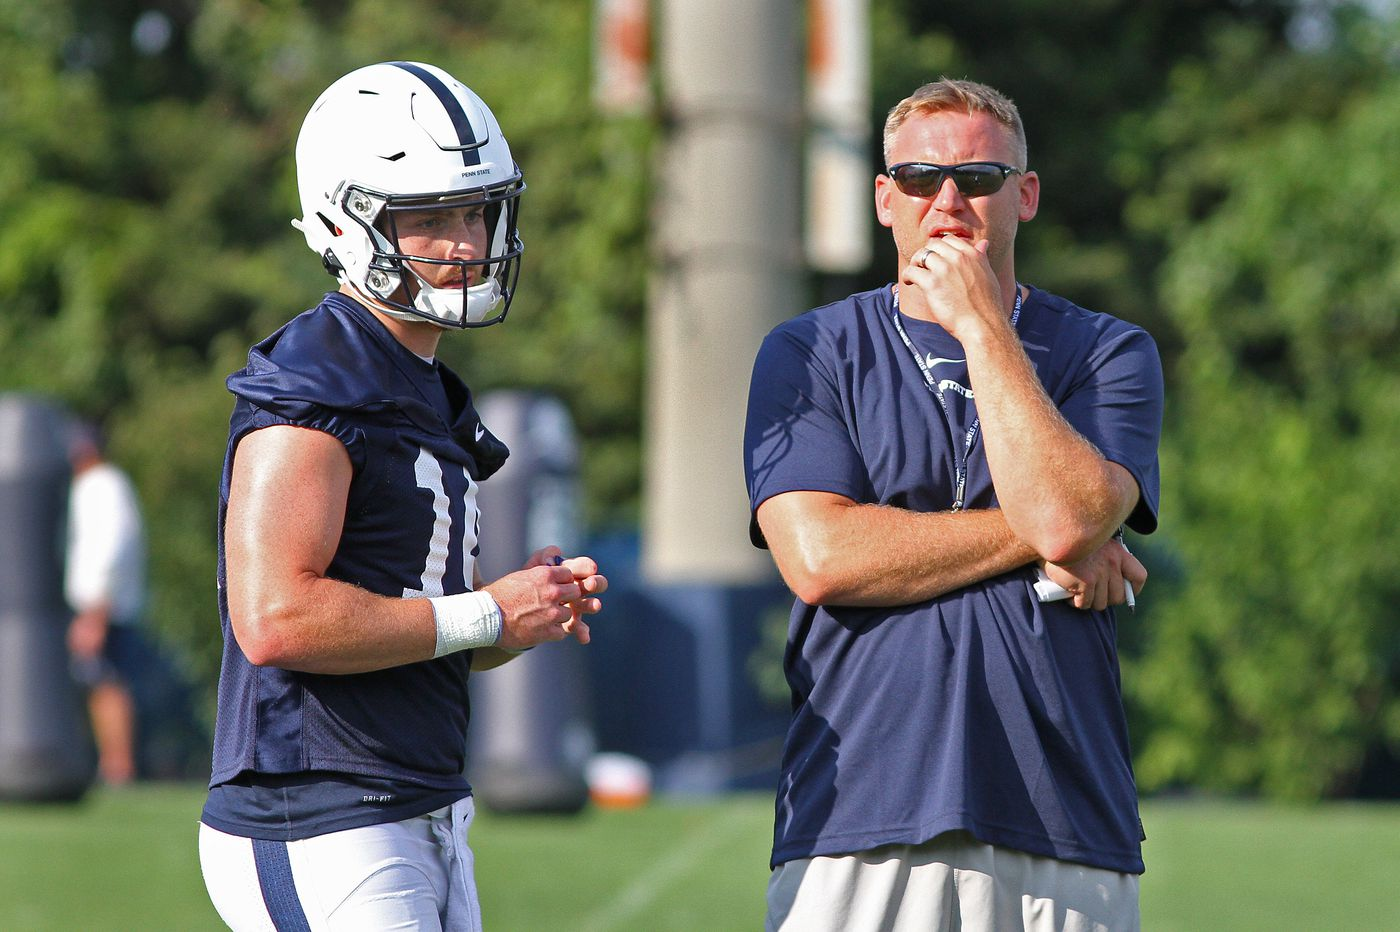 Penn State's offense needs to find better consistency entering a tough Big Ten stretch